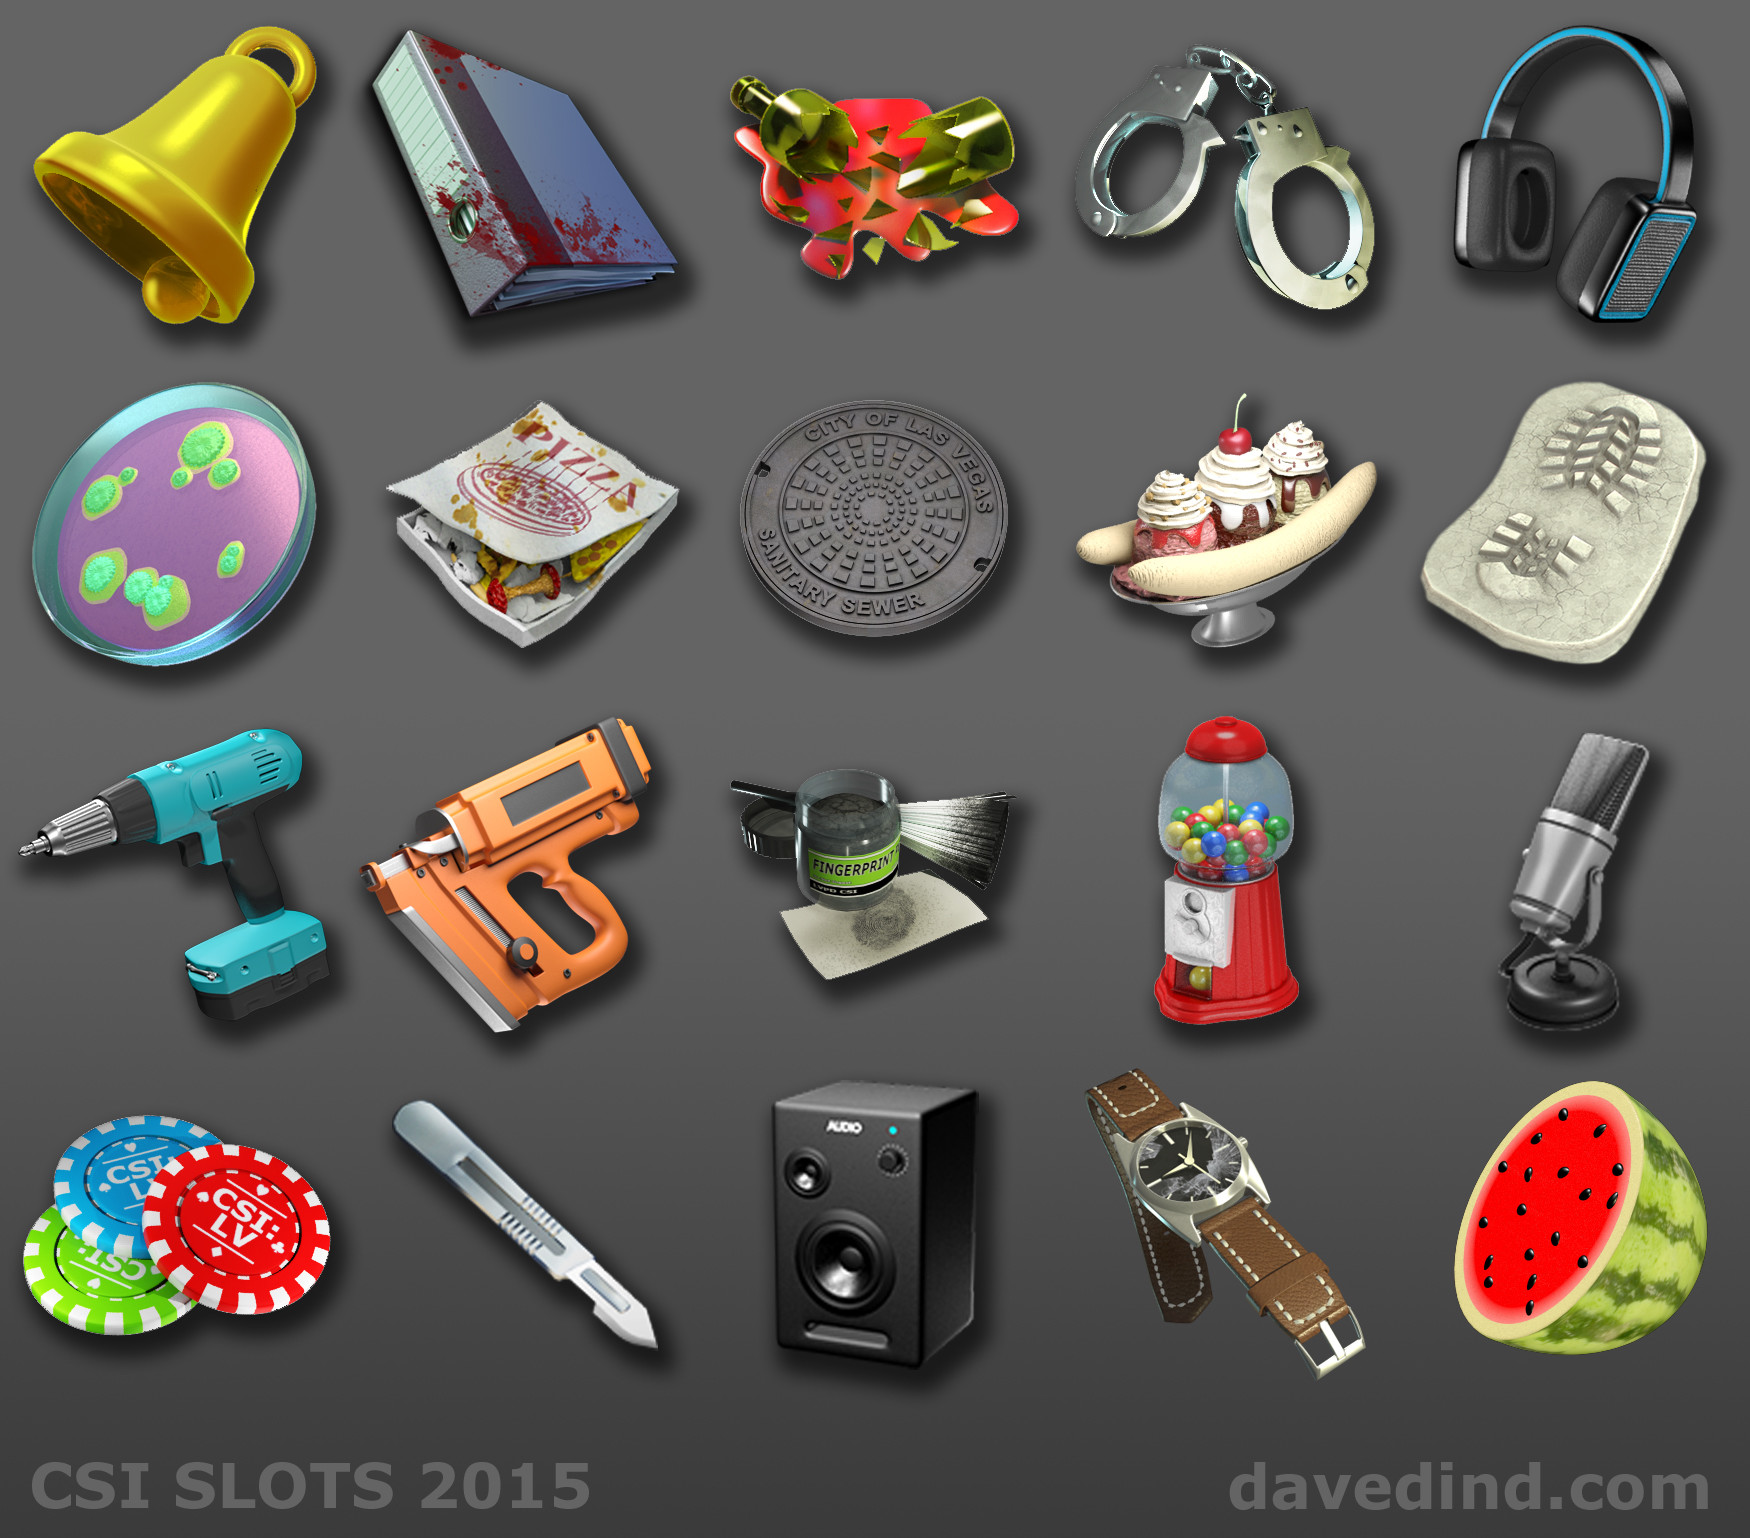 Dave dind all items